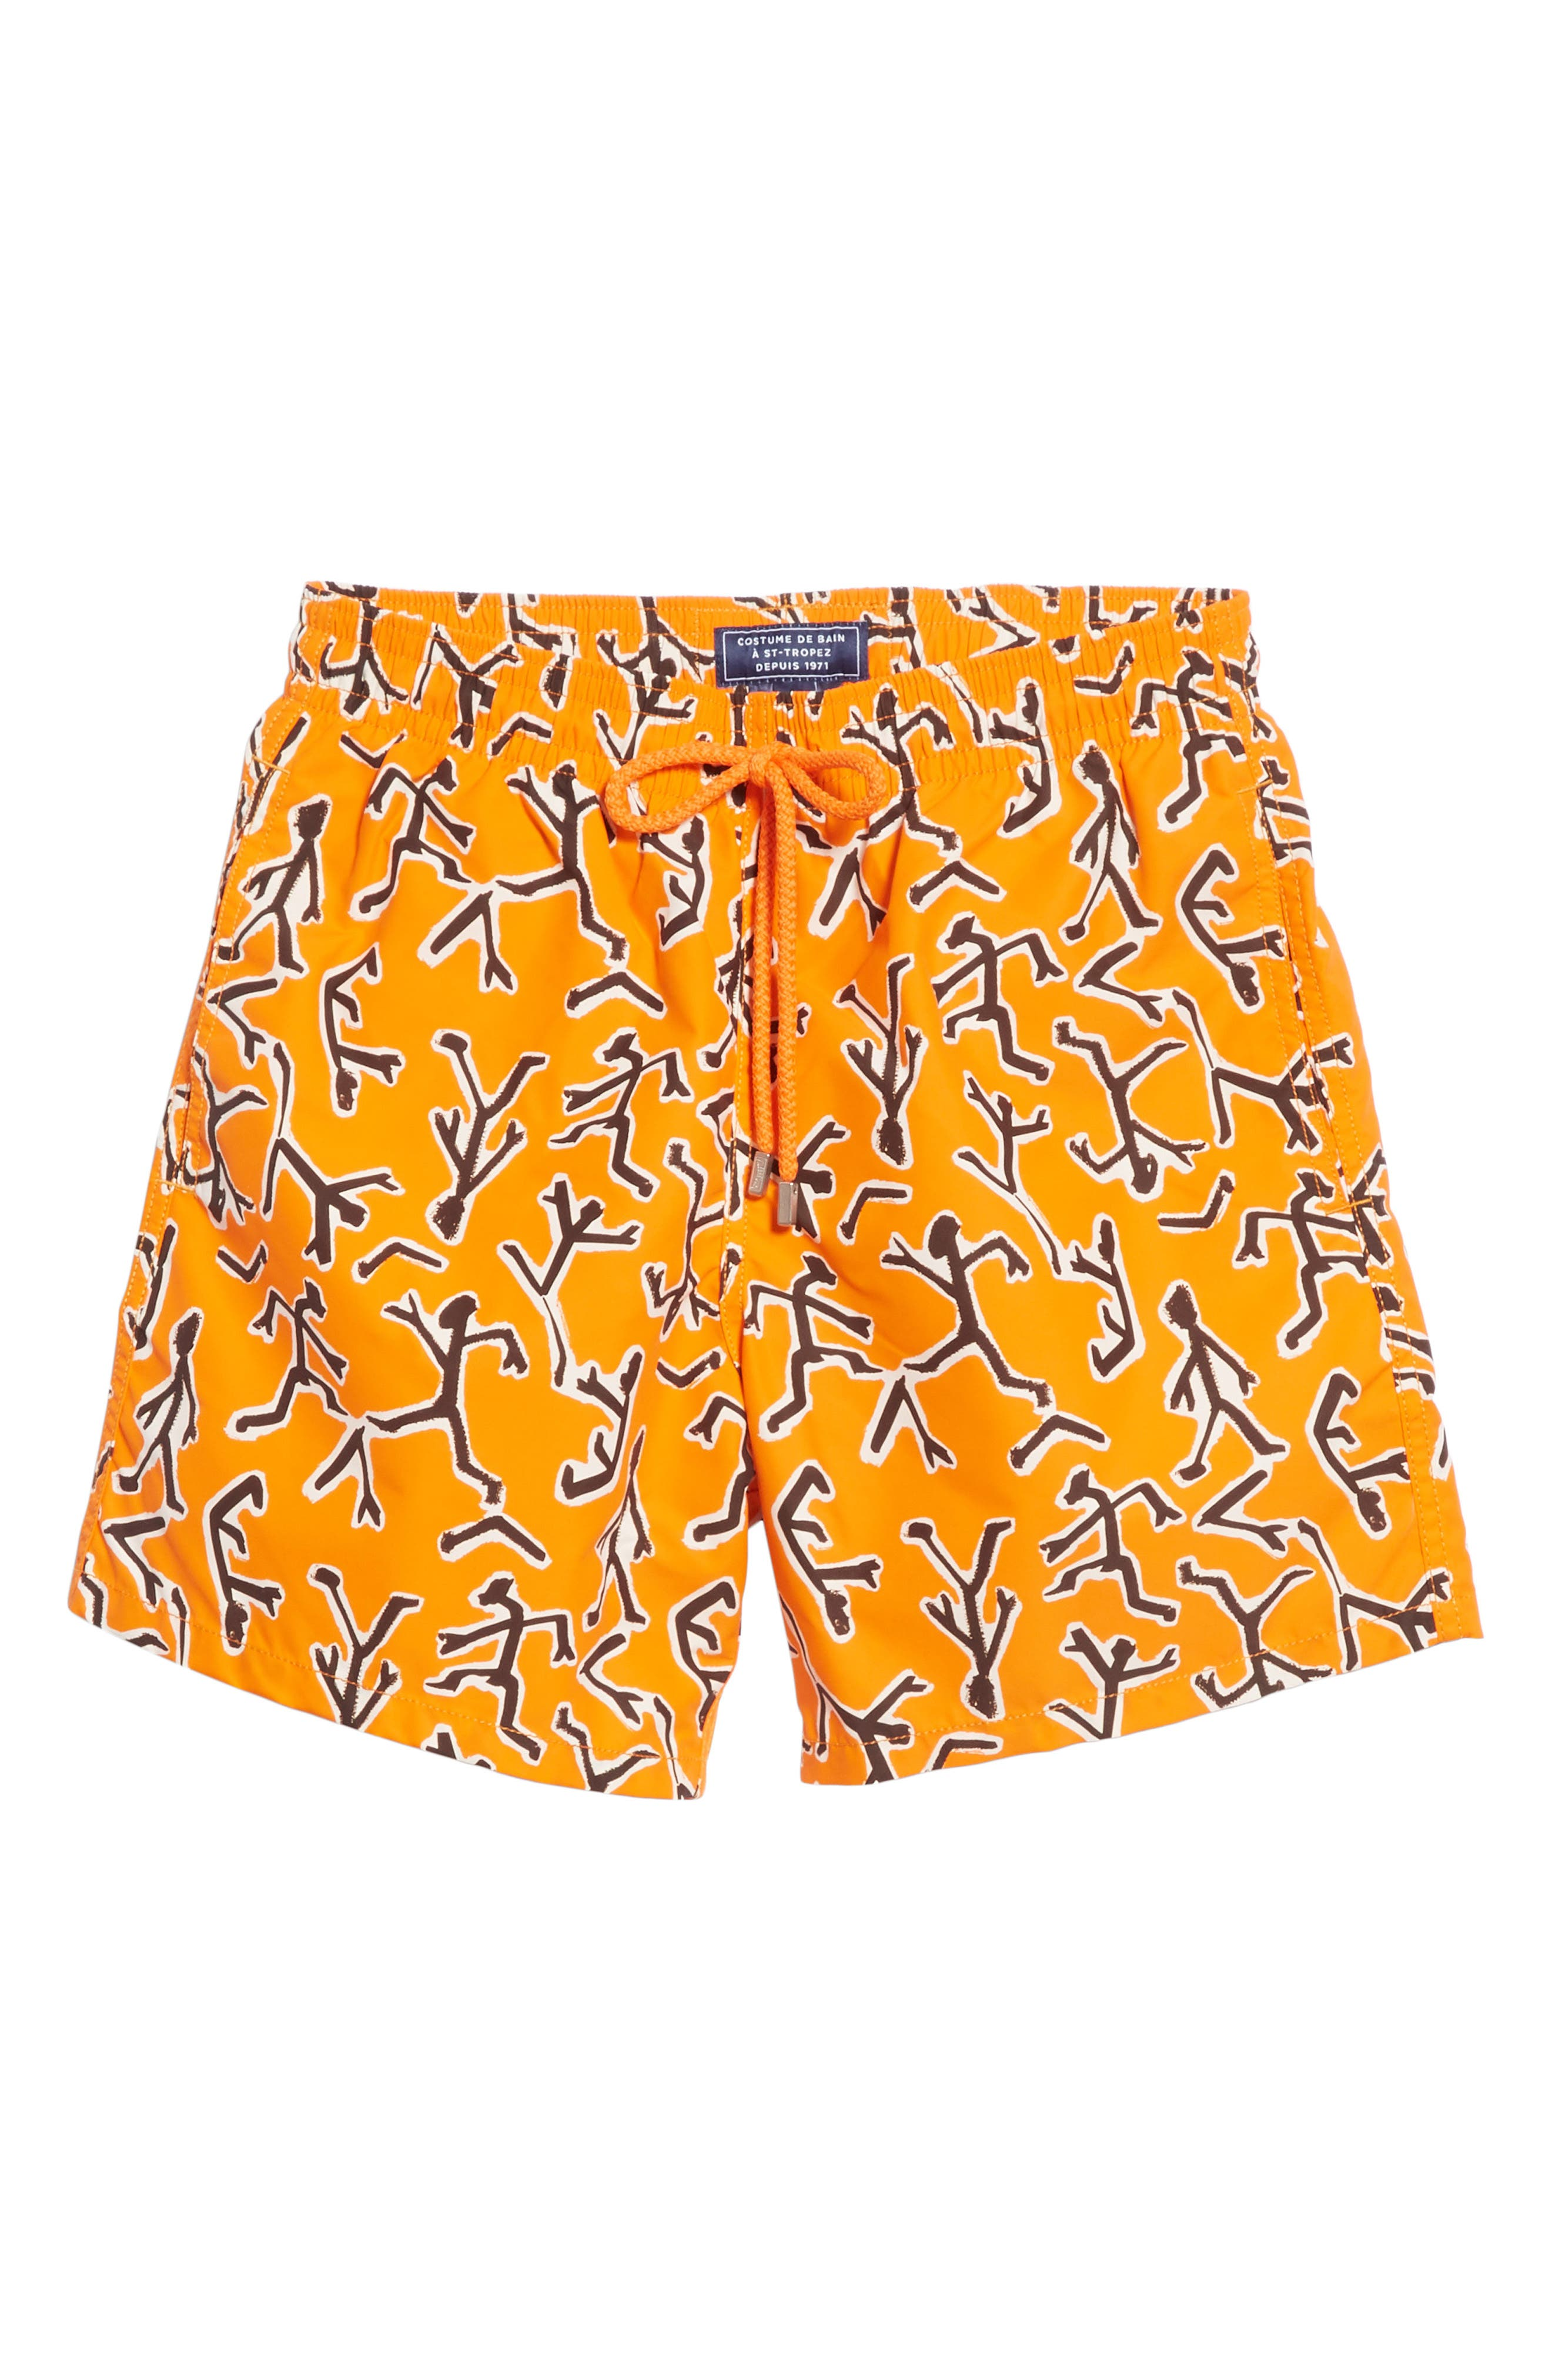 Fire Dance Swim Trunks,                             Alternate thumbnail 6, color,                             PAPAYA